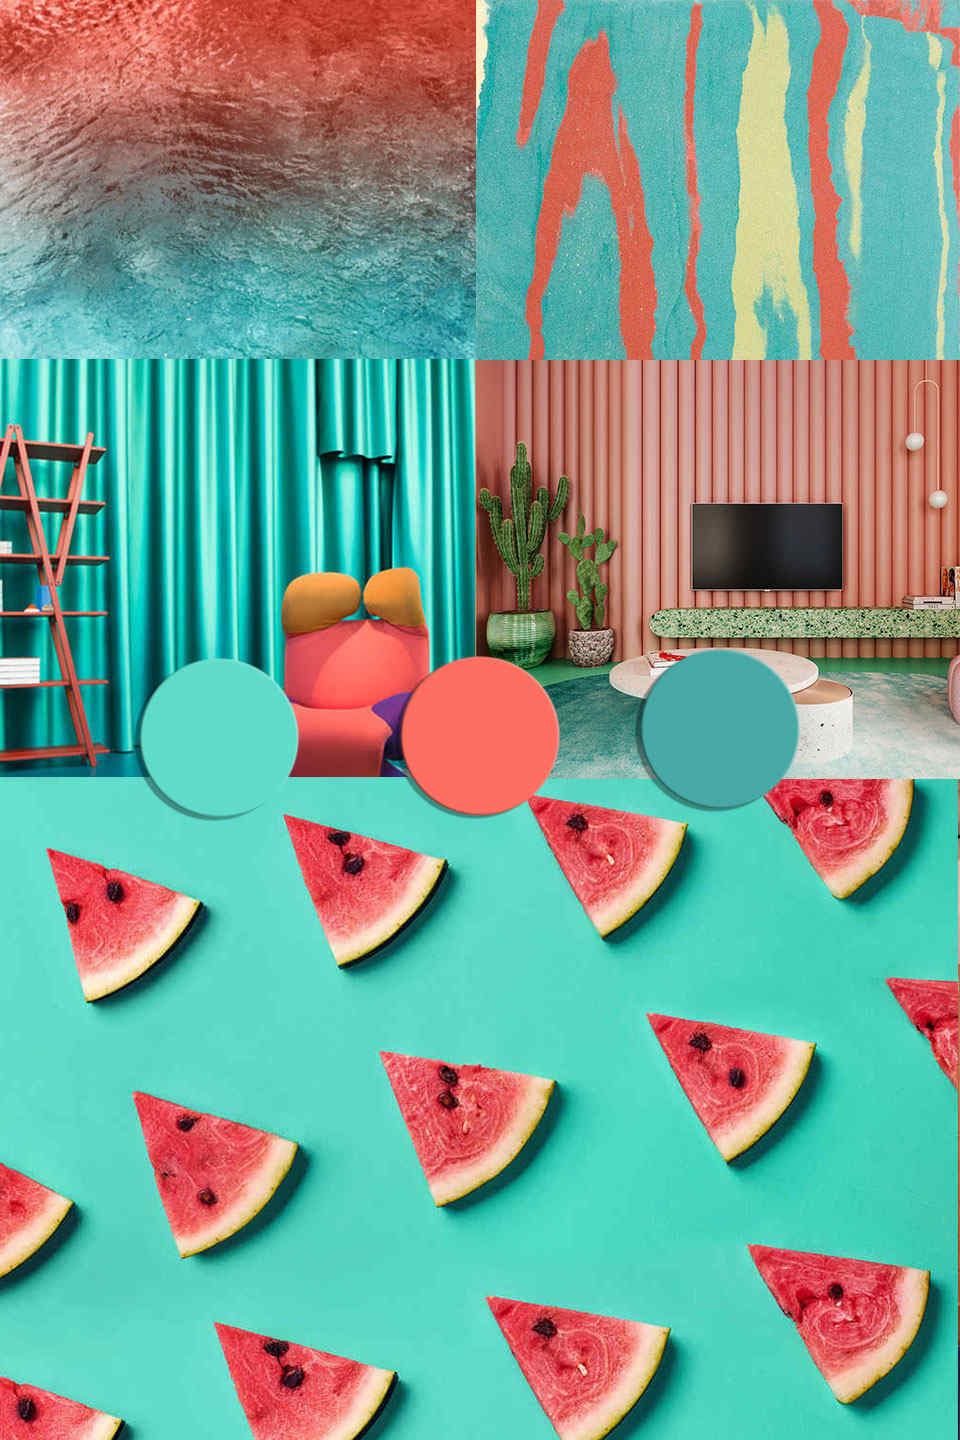 2b2a223c pantone2019 colortrends 2020 interiors coral turquoise